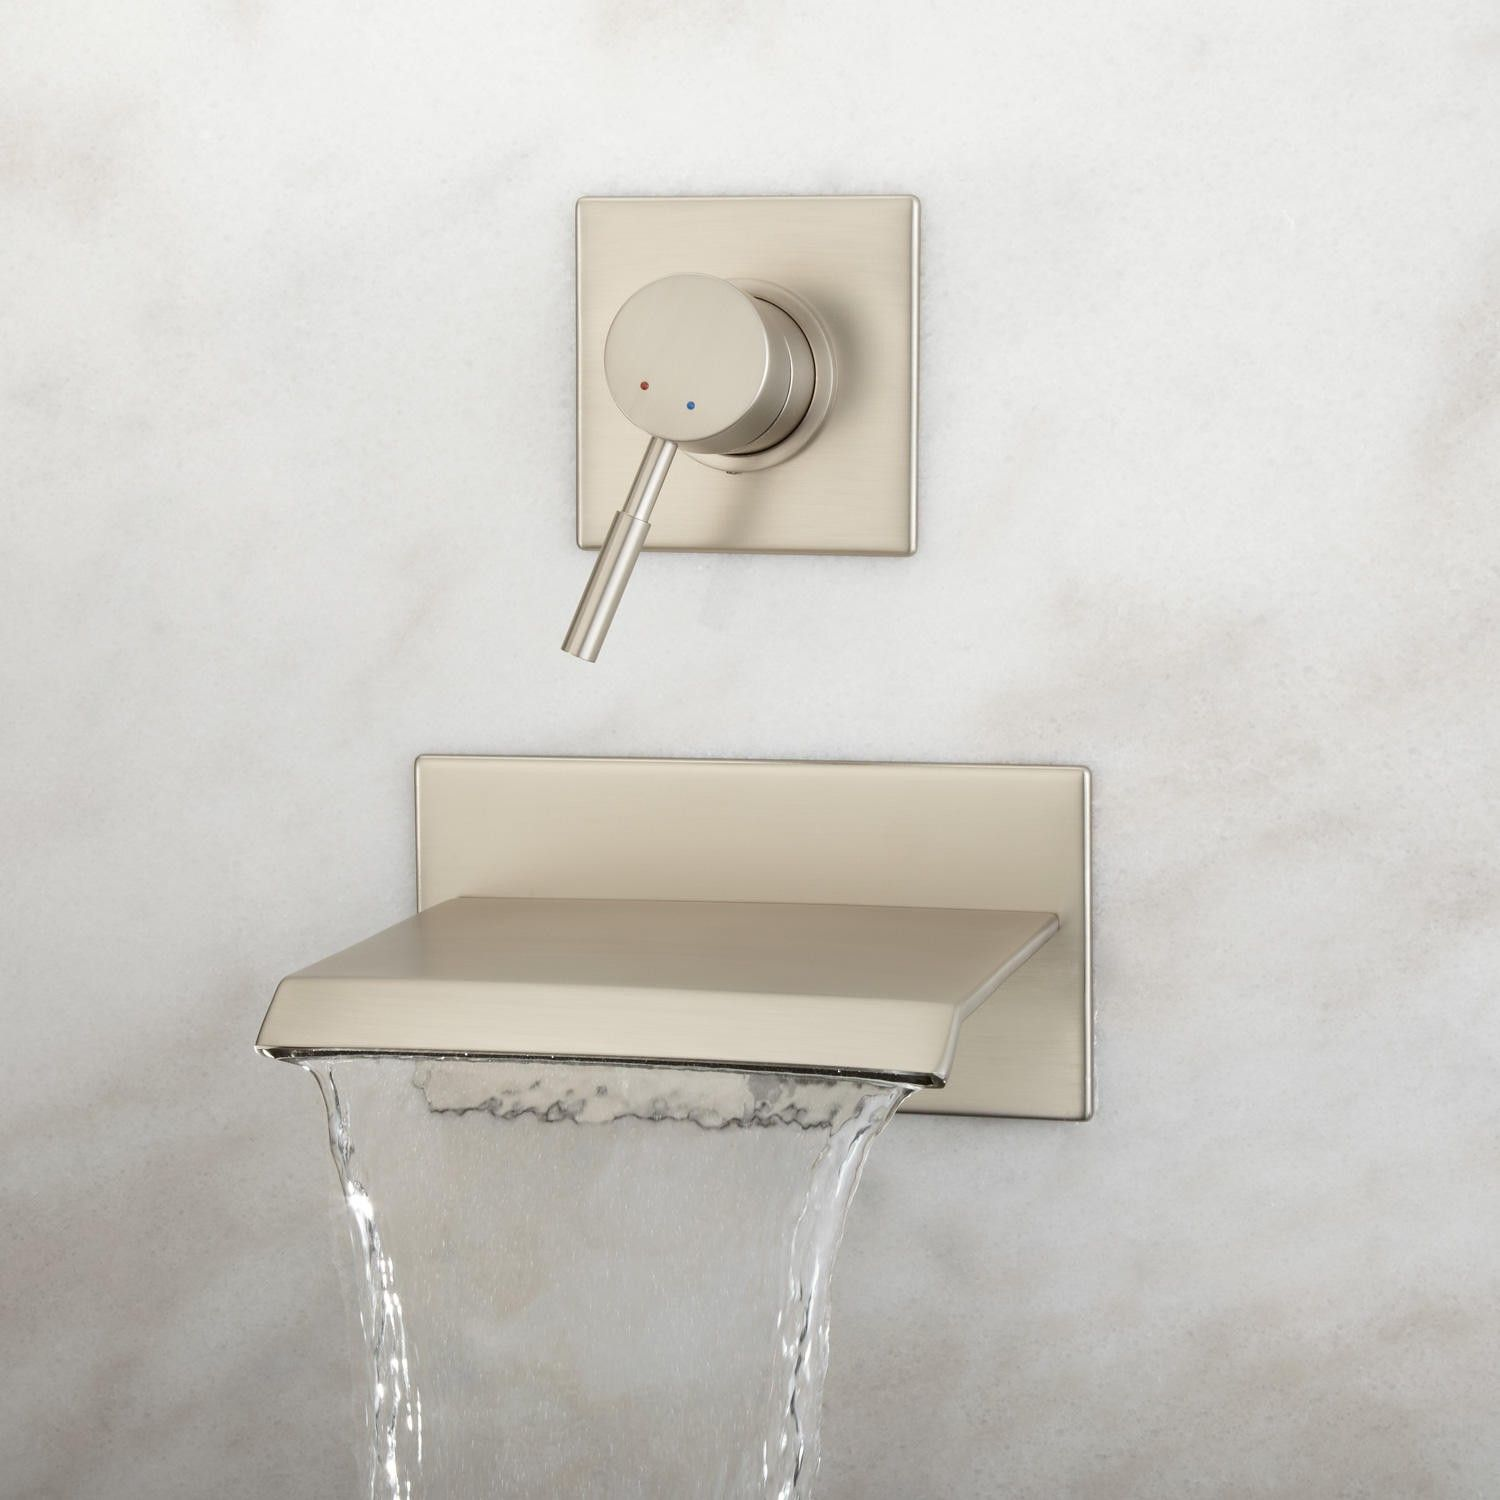 Lavelle Wall Mount Waterfall Tub Faucet Mounted Faucets Bathroom